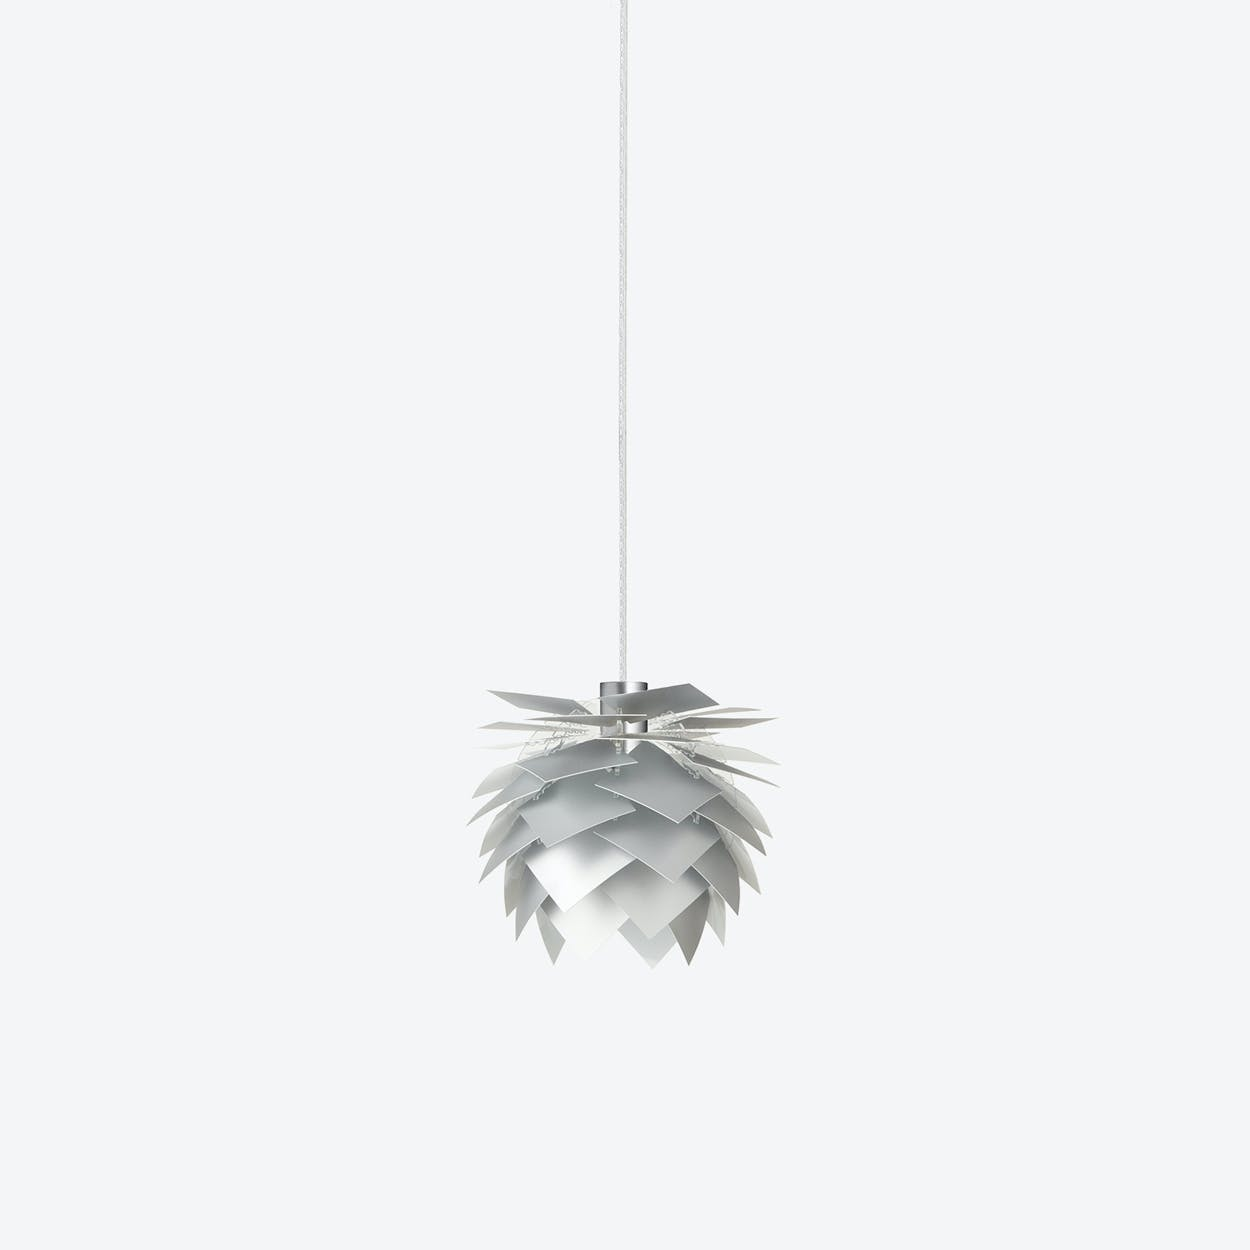 XS PineApple Pendant Lamp in Aluminium Look